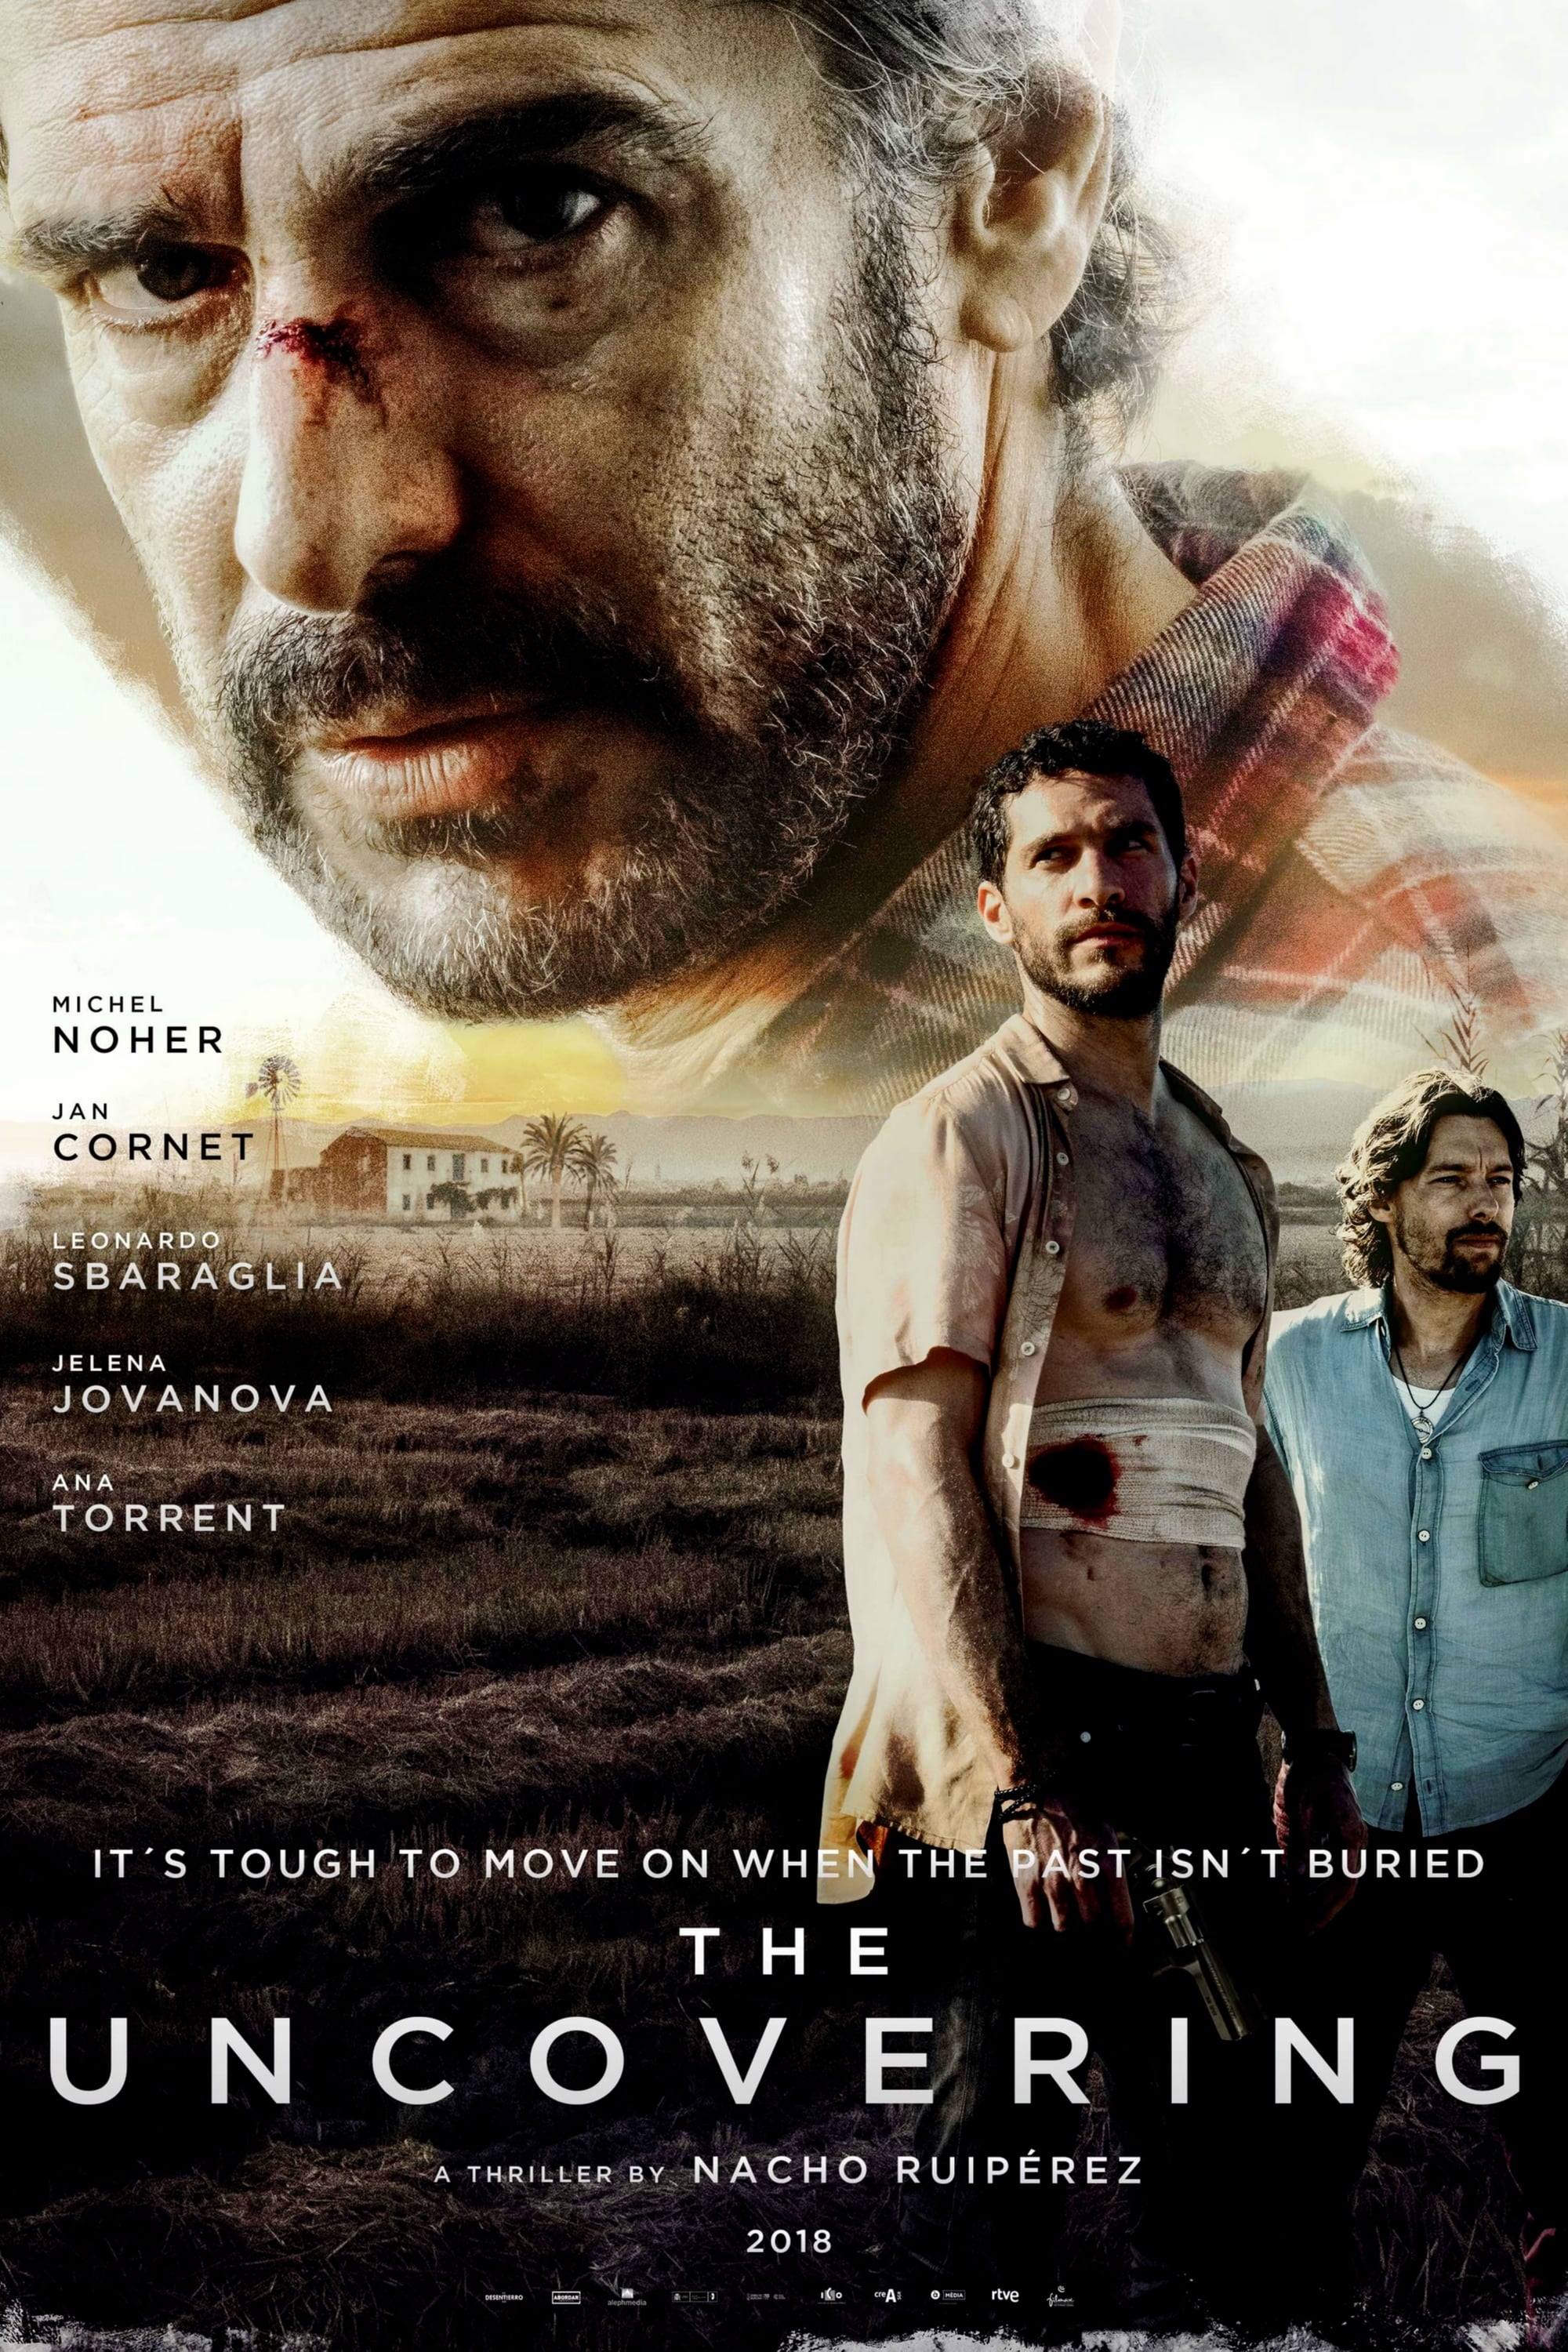 The Uncovering (2018)